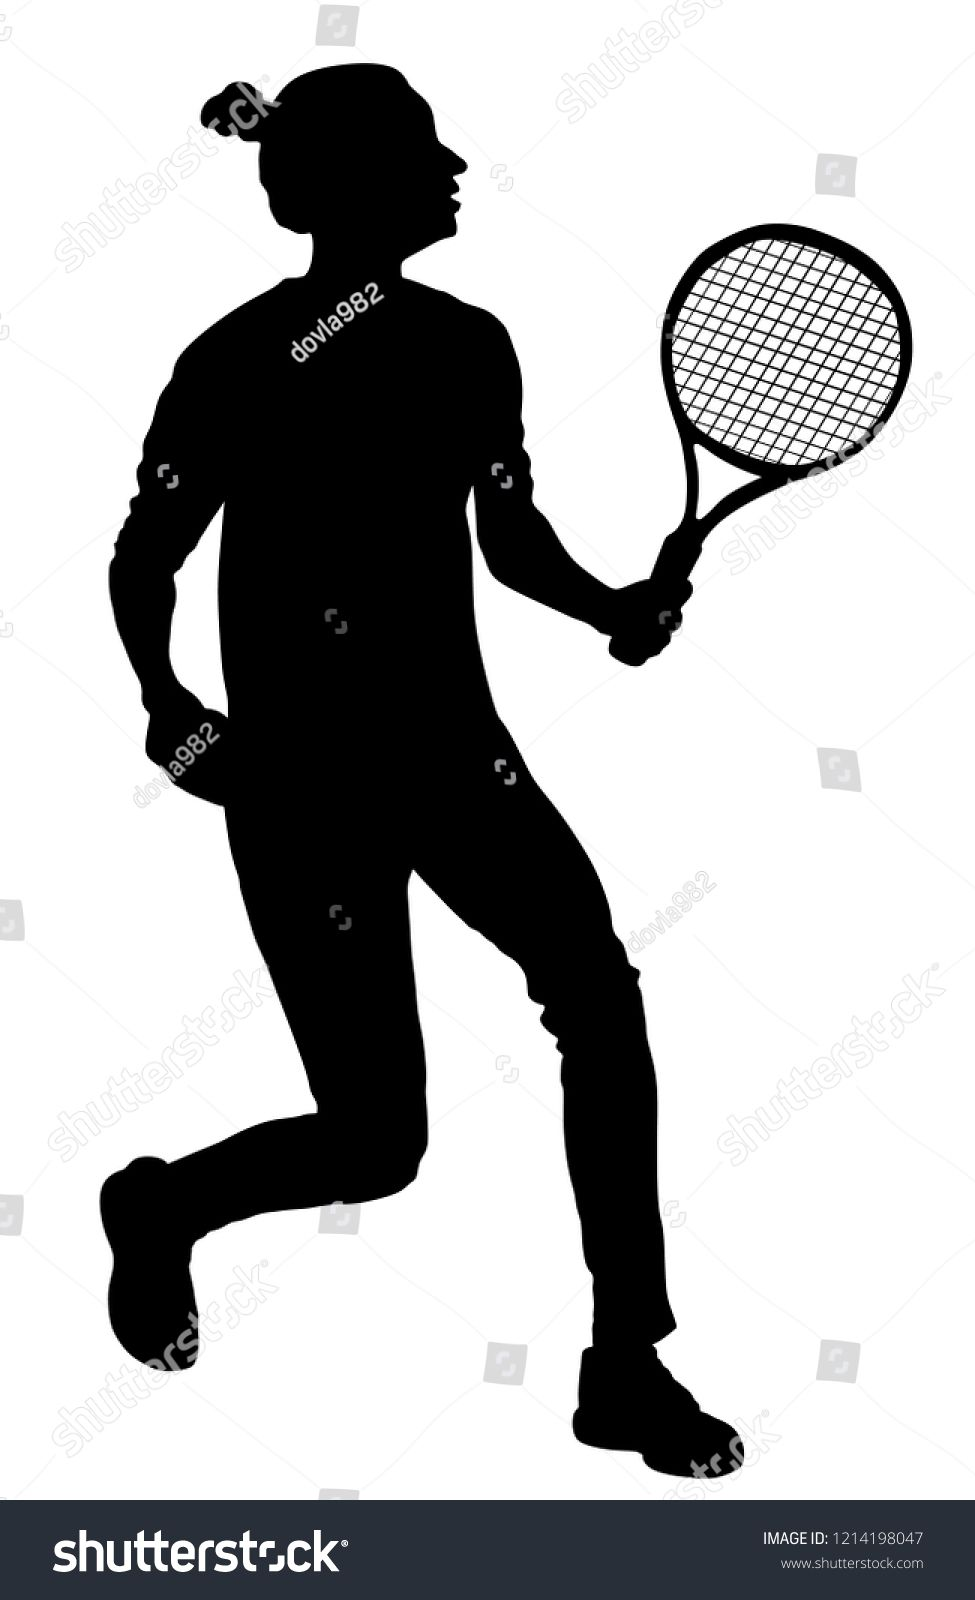 Woman Tennis Player Vector Silhouette Isolated On White Background Sport Tennis Shadow Isolated Recreation Pose Girl Play Tennis Tennis Players Sport Tennis